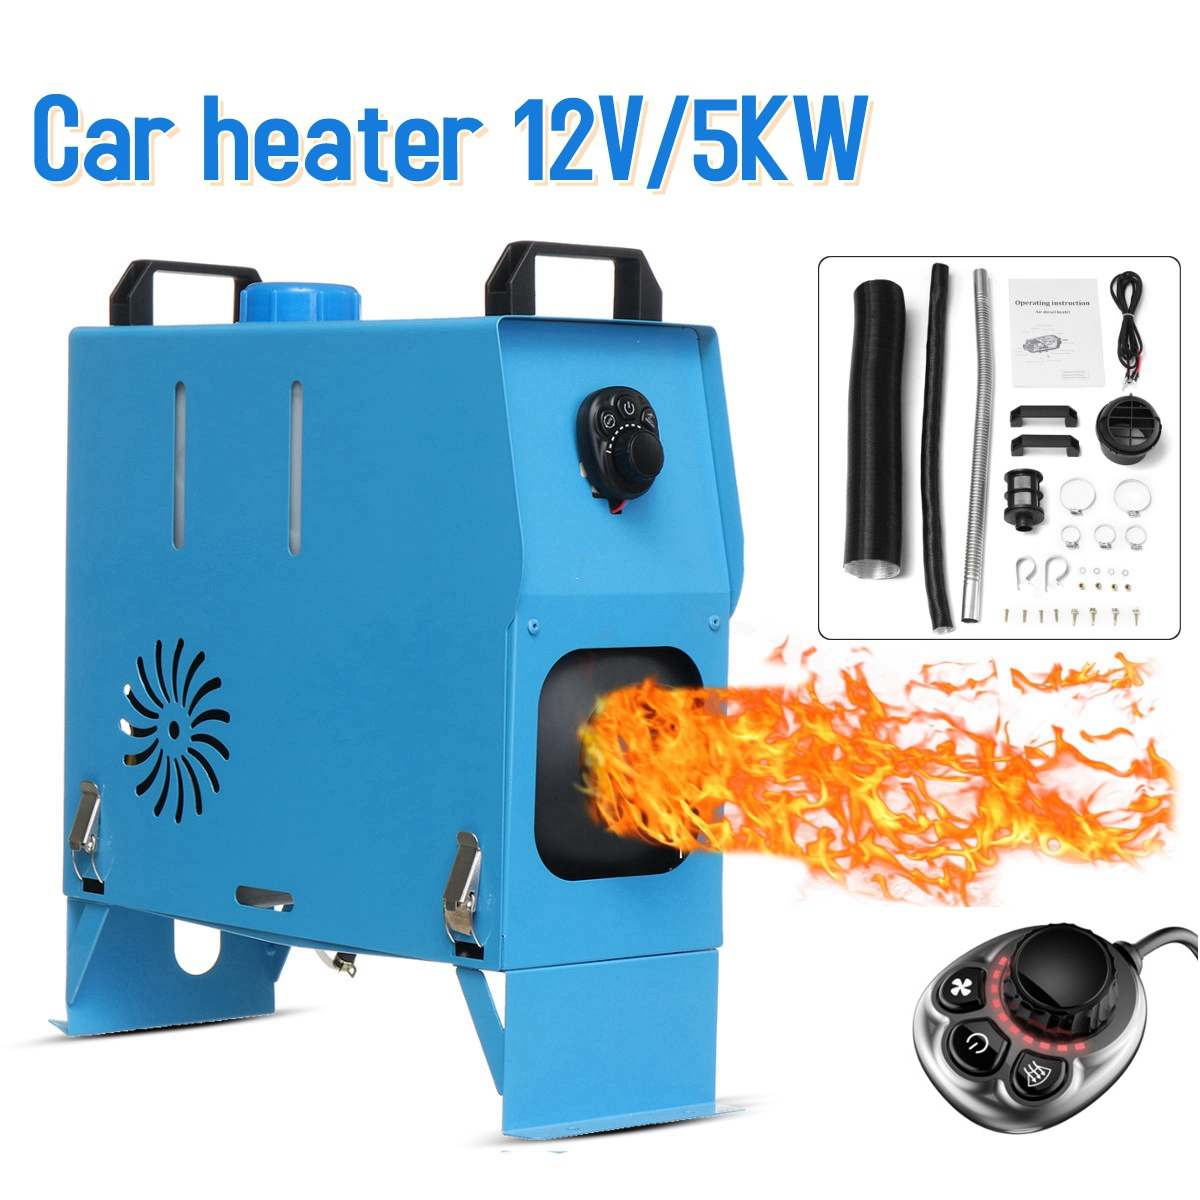 All In One 5000W Air Parking diesels Heater 5KW 12V One Hole Car Heater For Trucks Motor-Homes Boats Bus +Knob SwitchAll In One 5000W Air Parking diesels Heater 5KW 12V One Hole Car Heater For Trucks Motor-Homes Boats Bus +Knob Switch